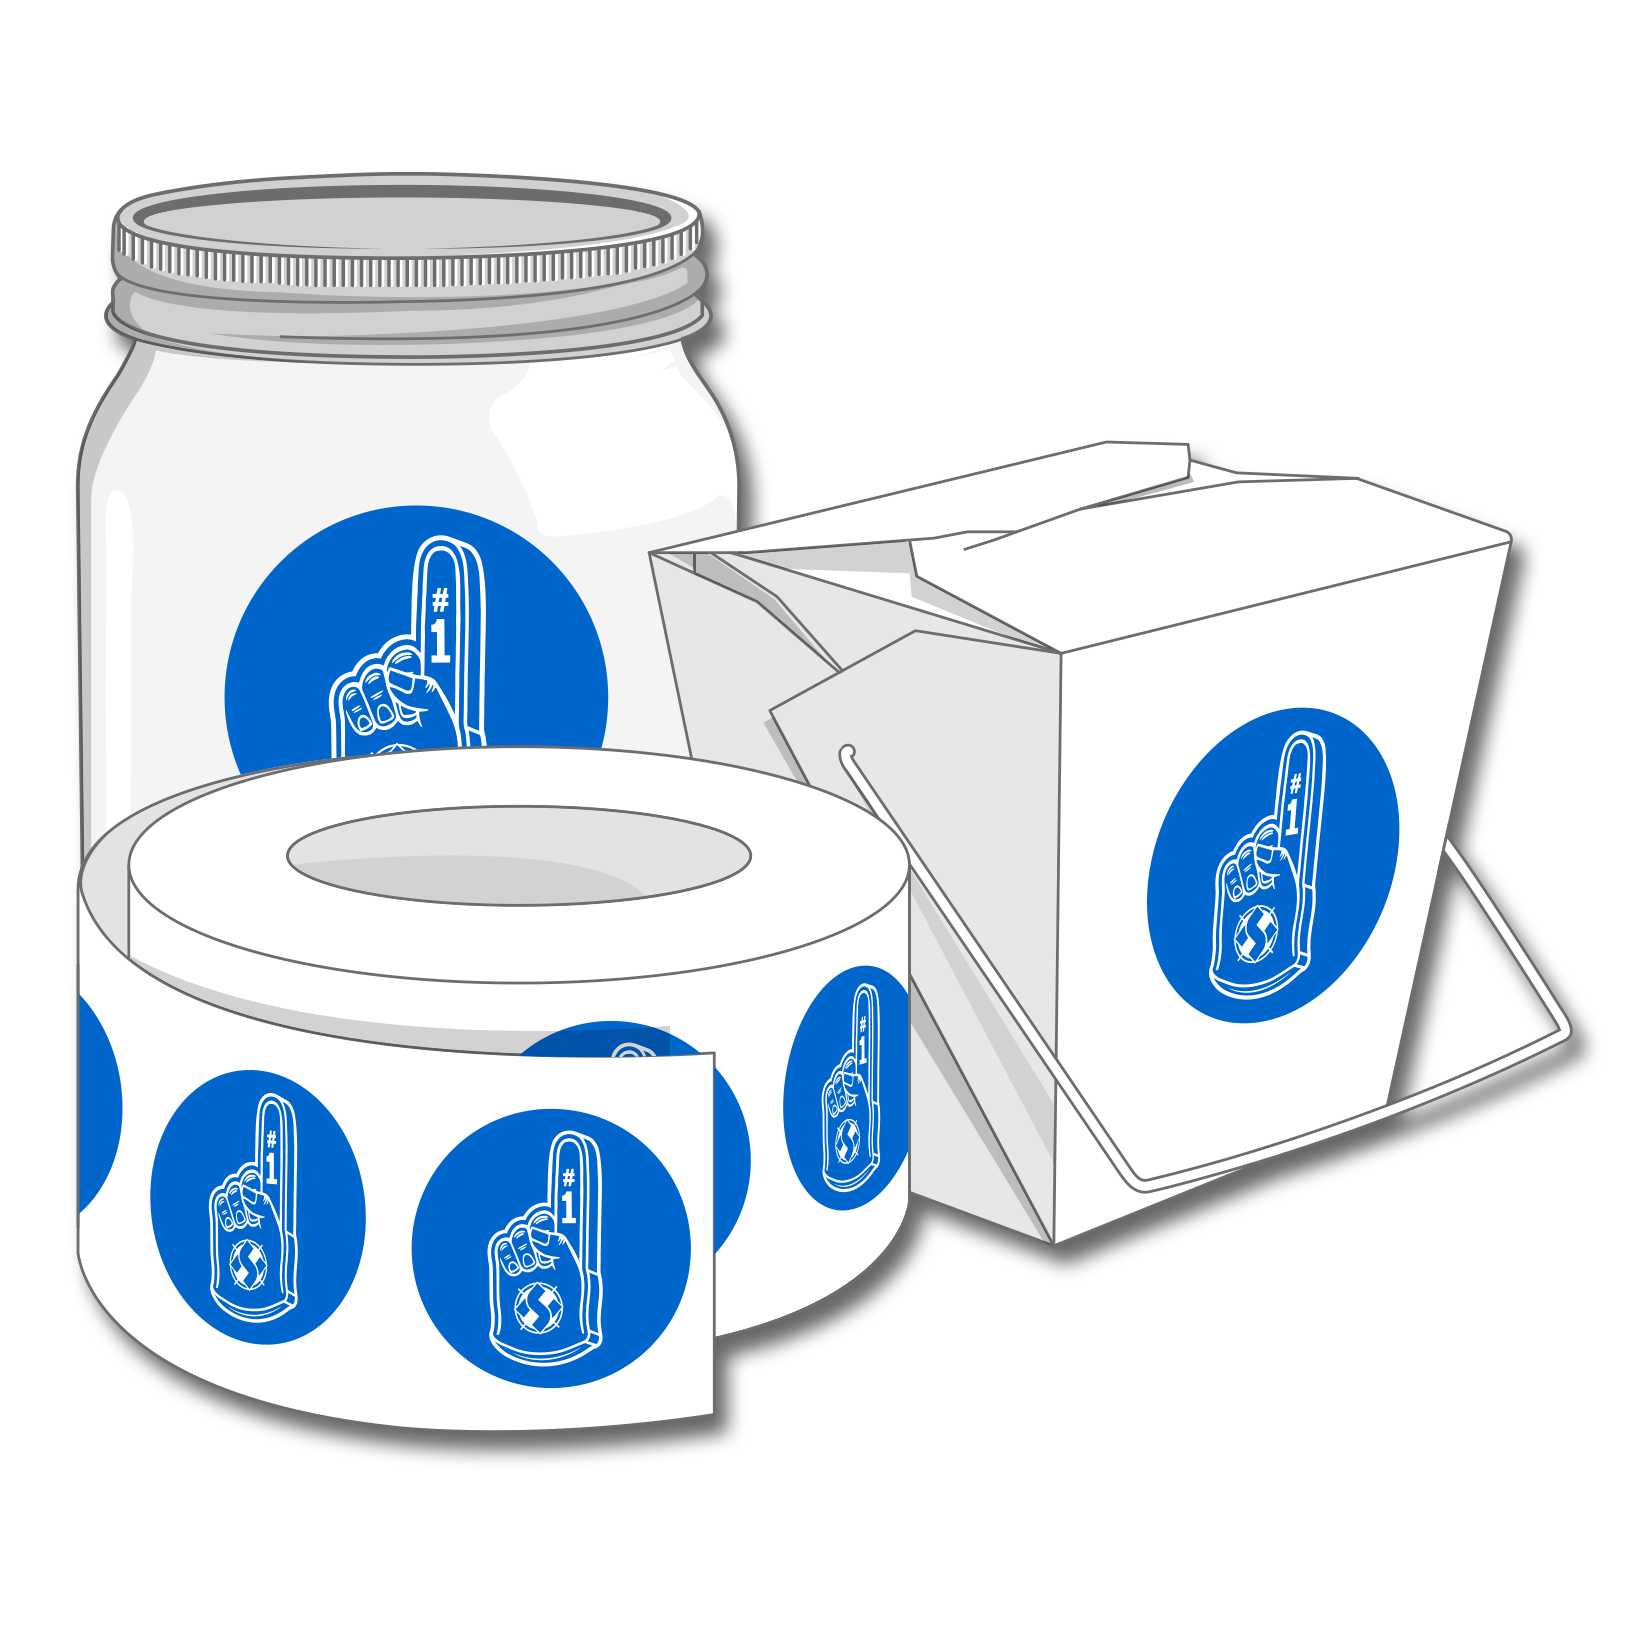 Labels custom roll labels are ideal for any packaging promo pack or special event labeling needs each label is precisely cut and made with a matte